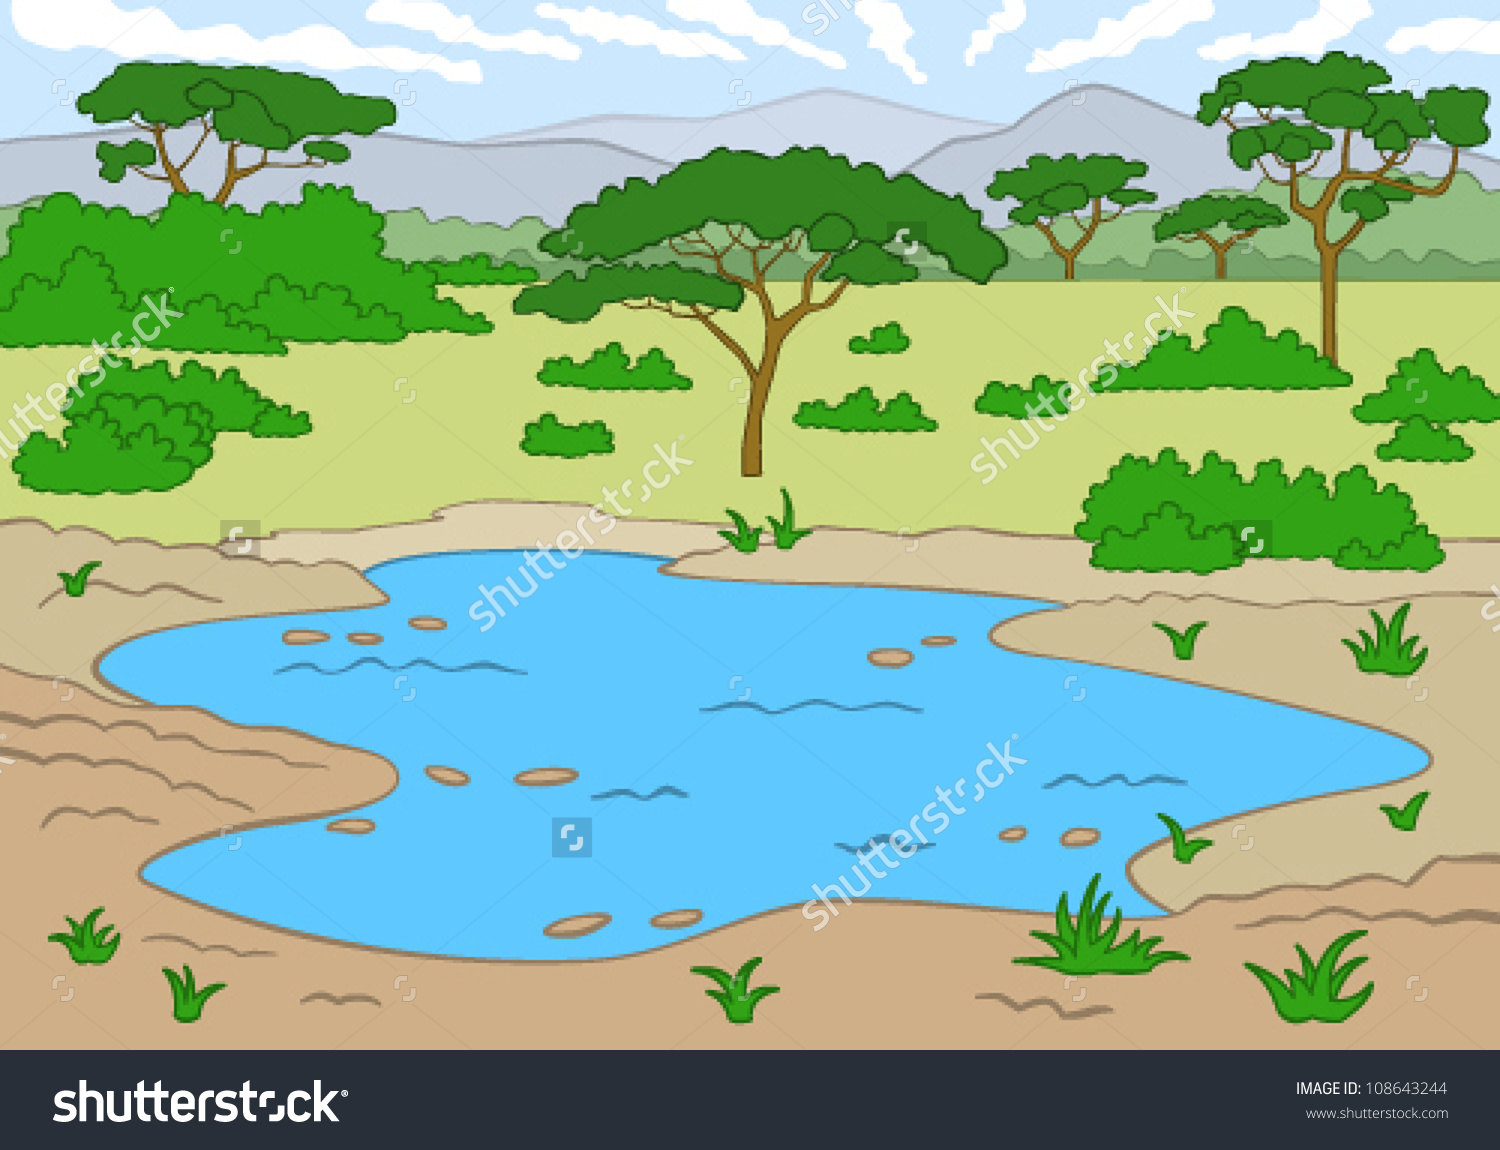 Watering hole clipart.